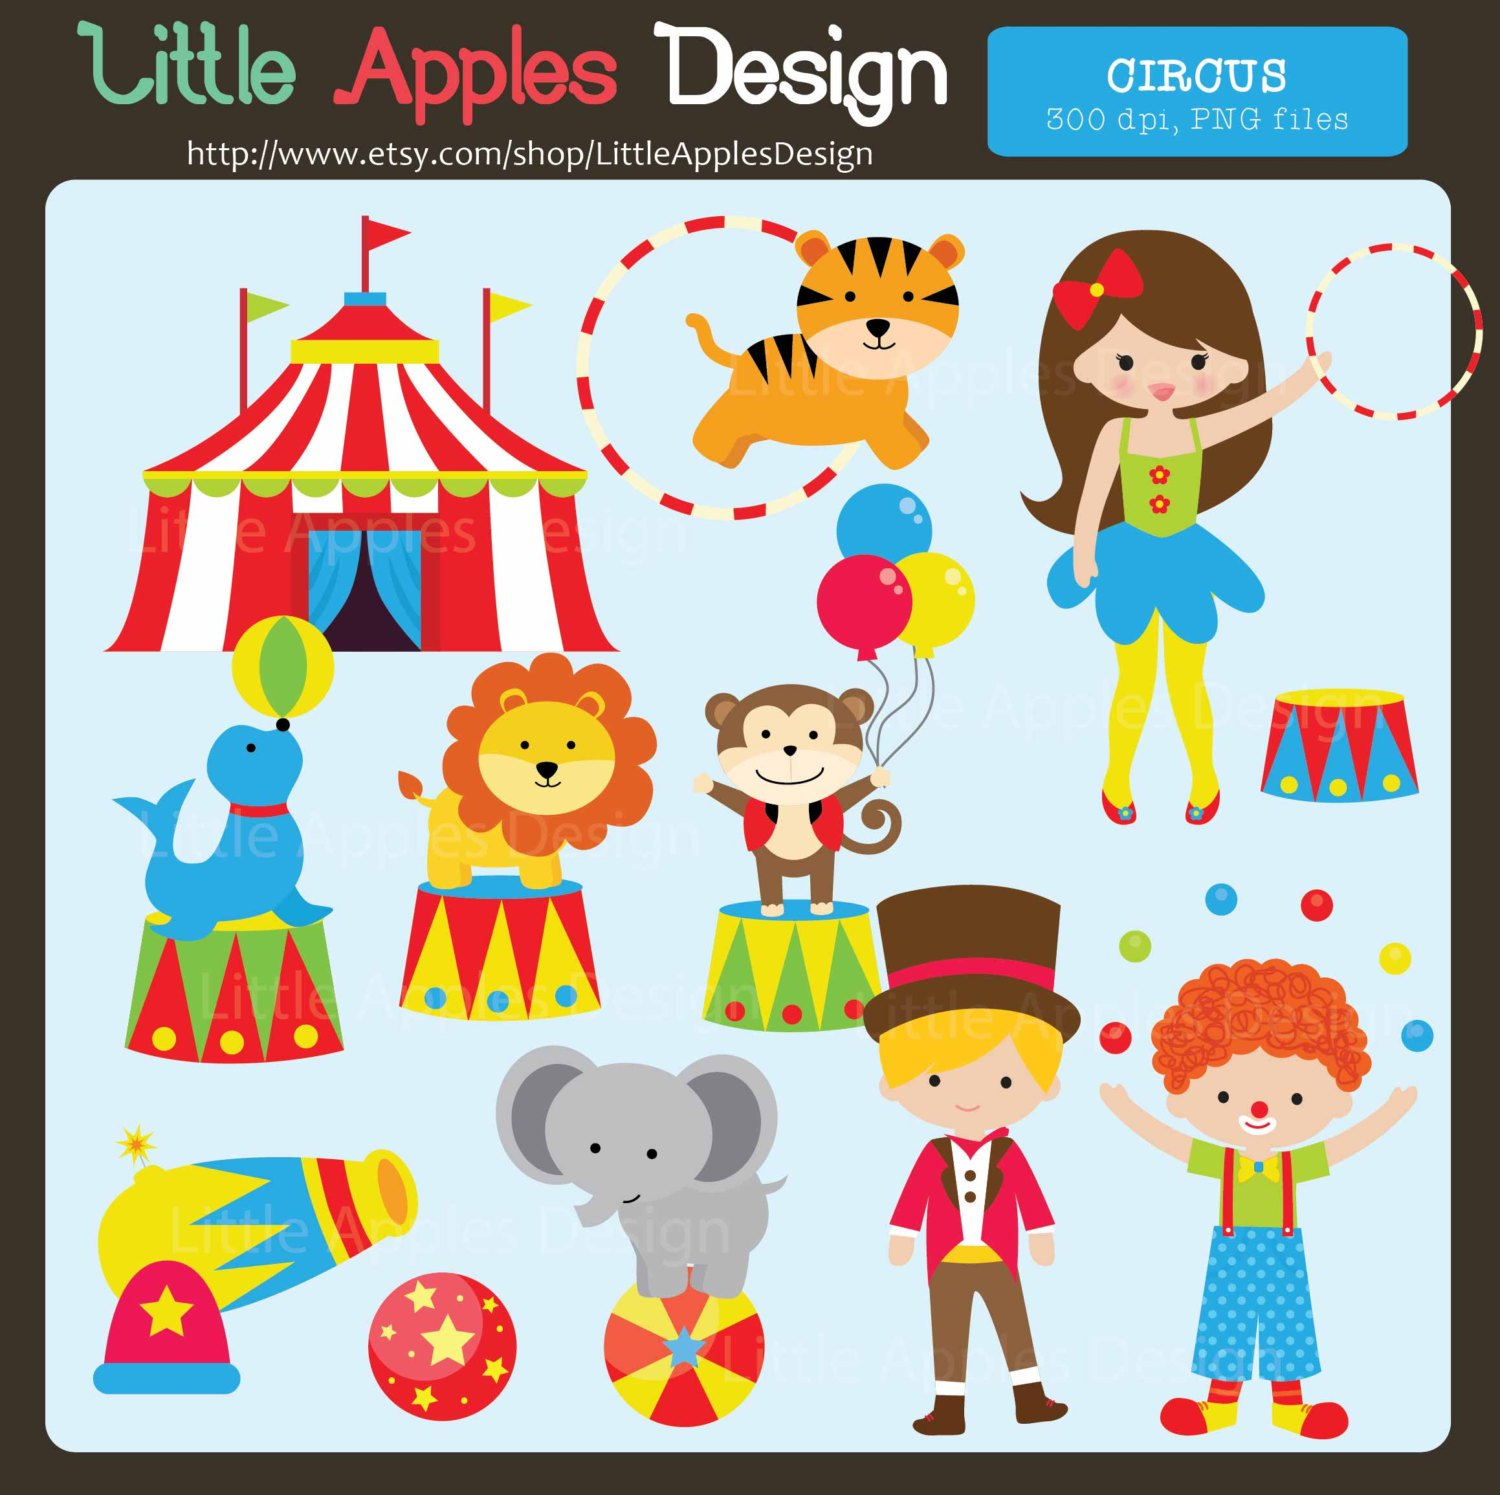 Circus clipart free download banner black and white library Circus clipart free download 8 » Clipart Portal banner black and white library